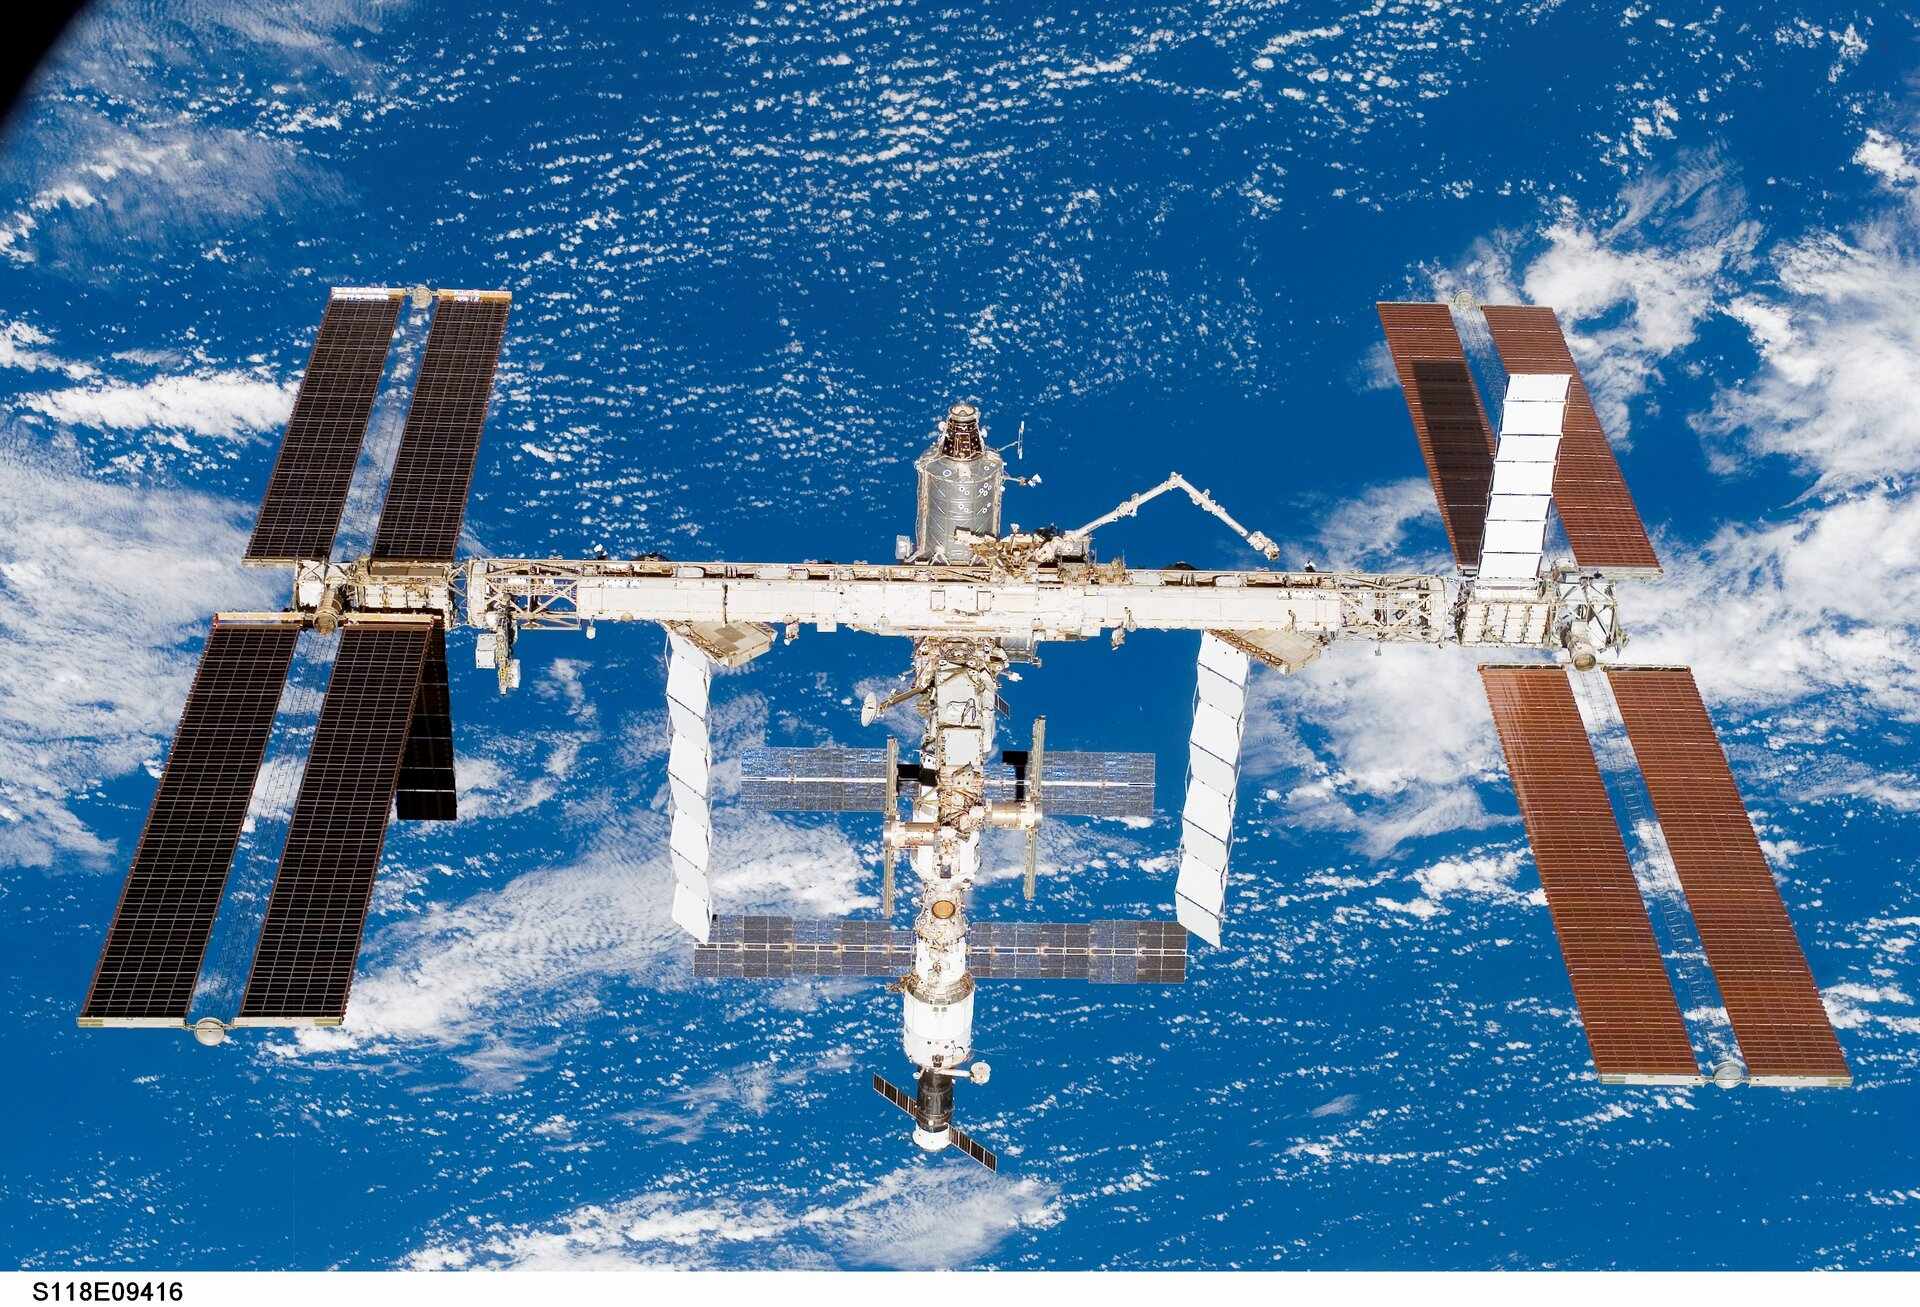 ISS configuration as of 19 August 2007